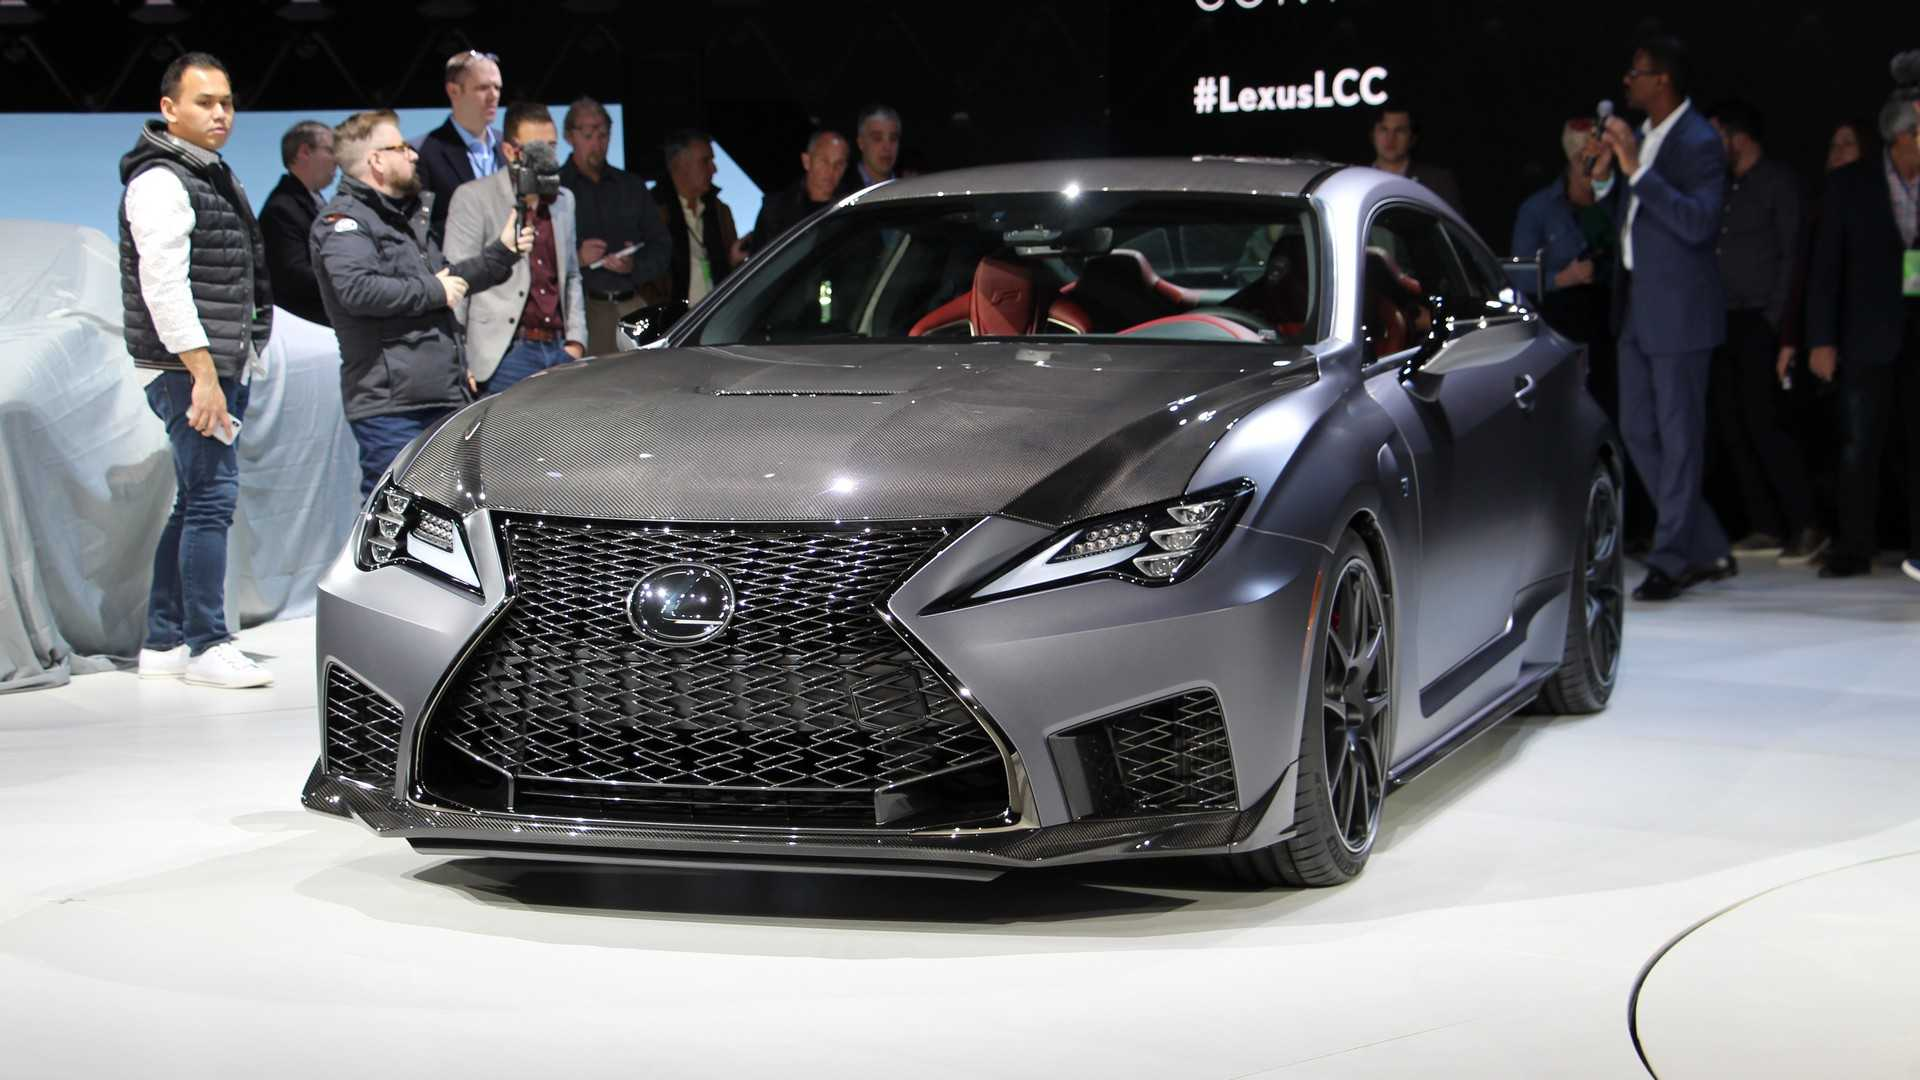 16 Concept of 2020 Lexus Rcf First Drive for 2020 Lexus Rcf